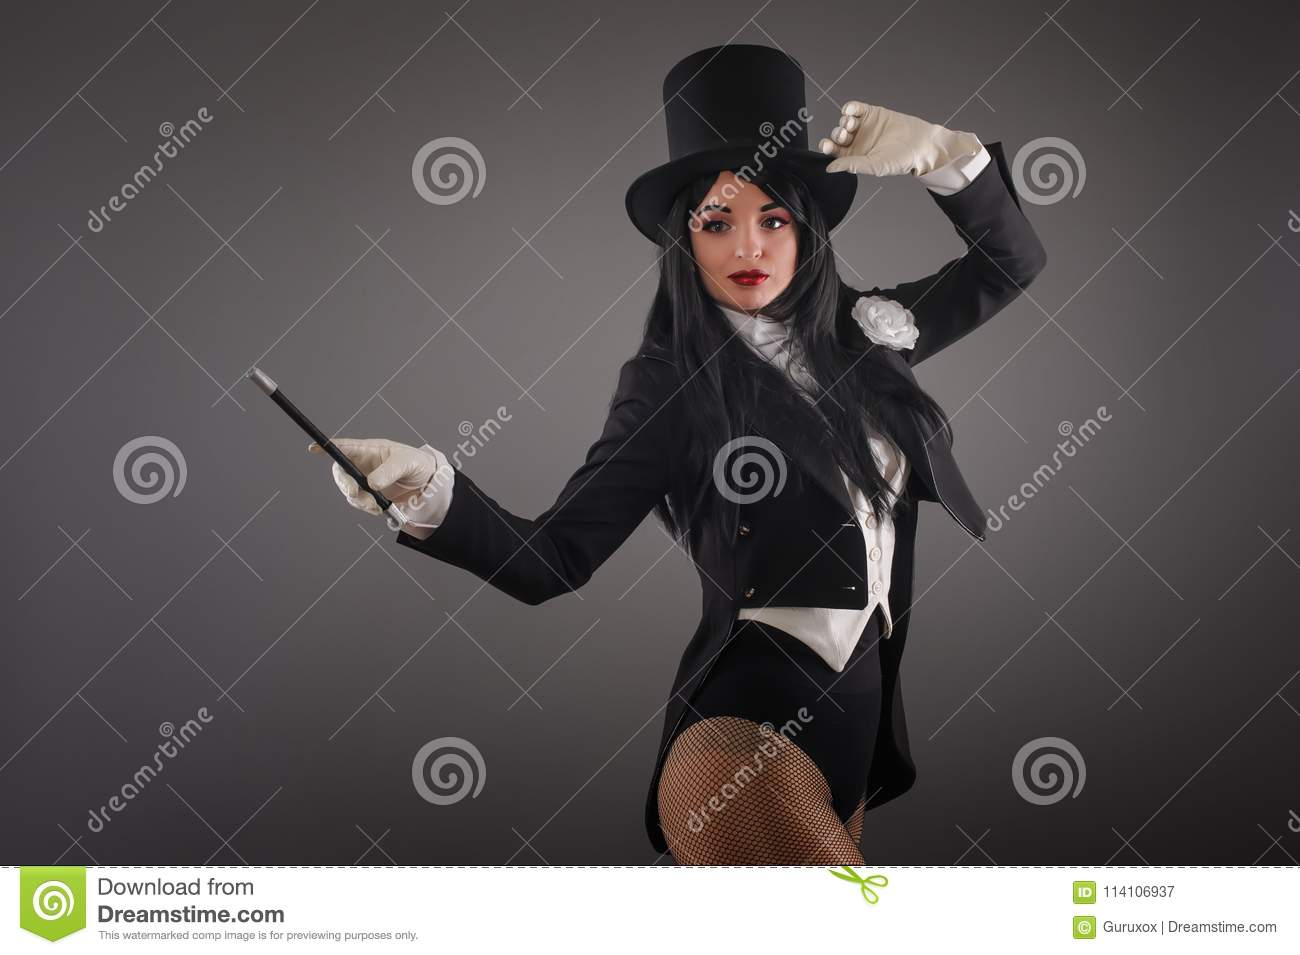 Female magician in costume suit with magic stick doing trick